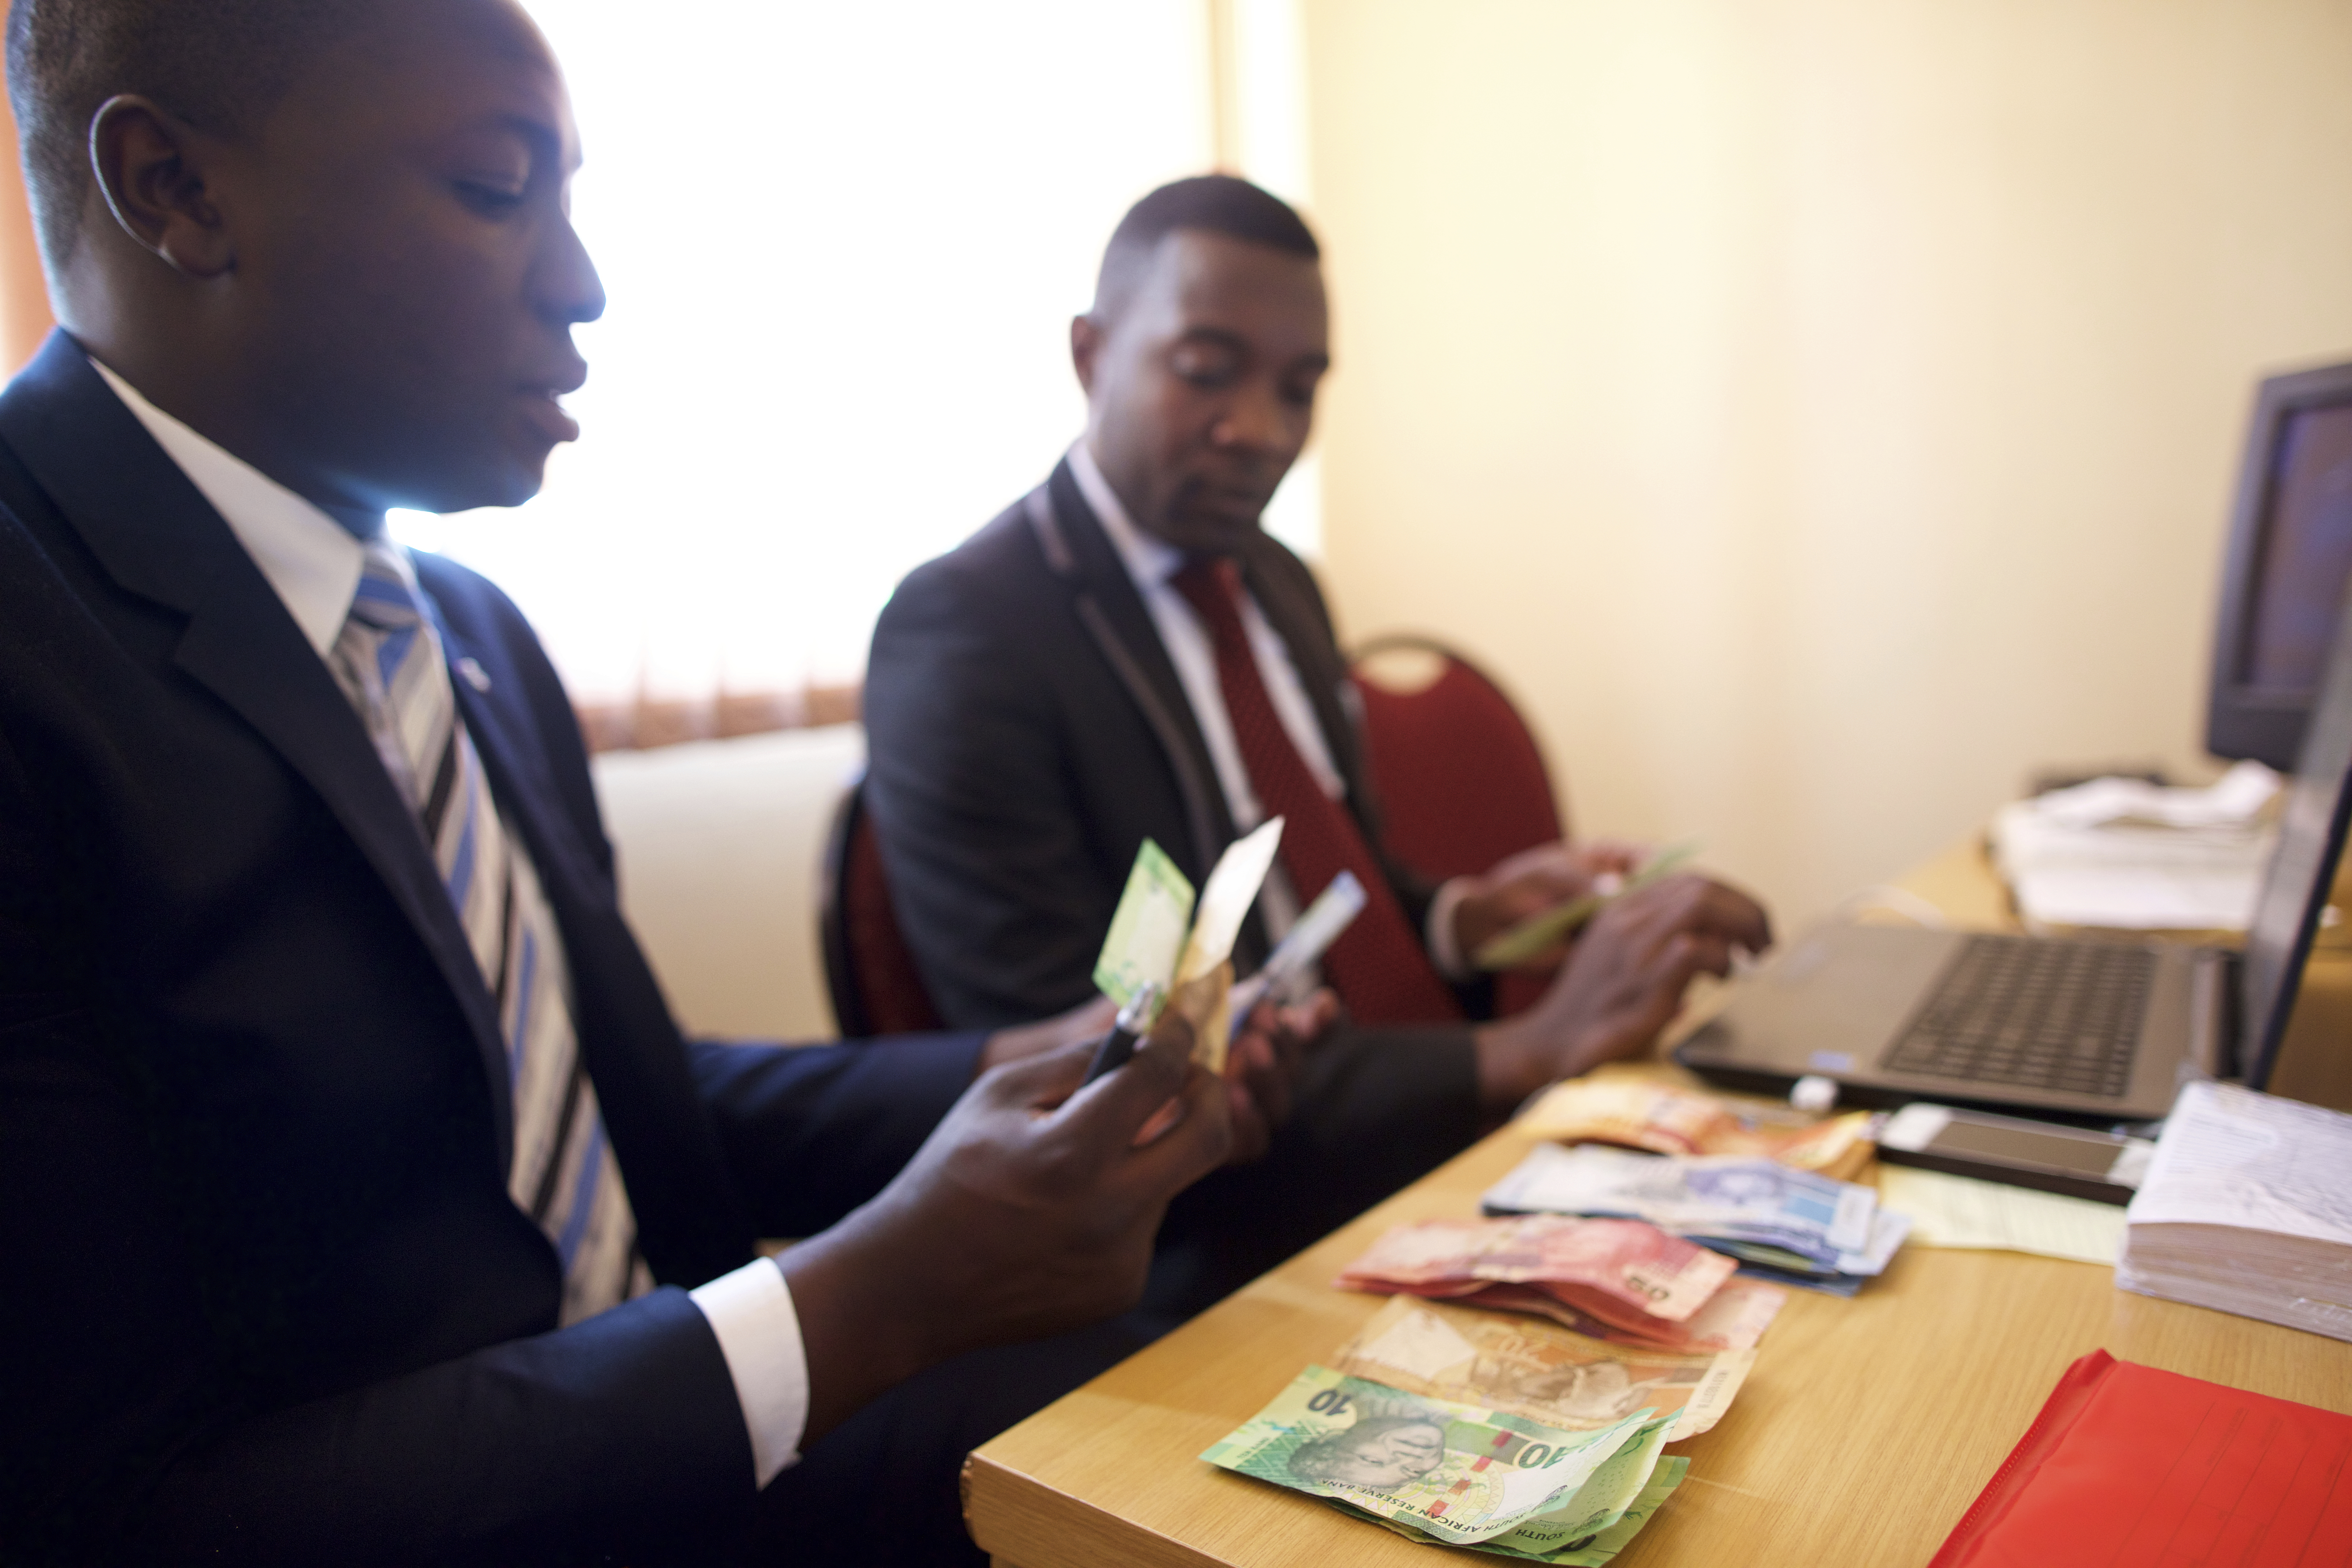 Two ward clerks in South Africa counting rands given for tithes and offerings.